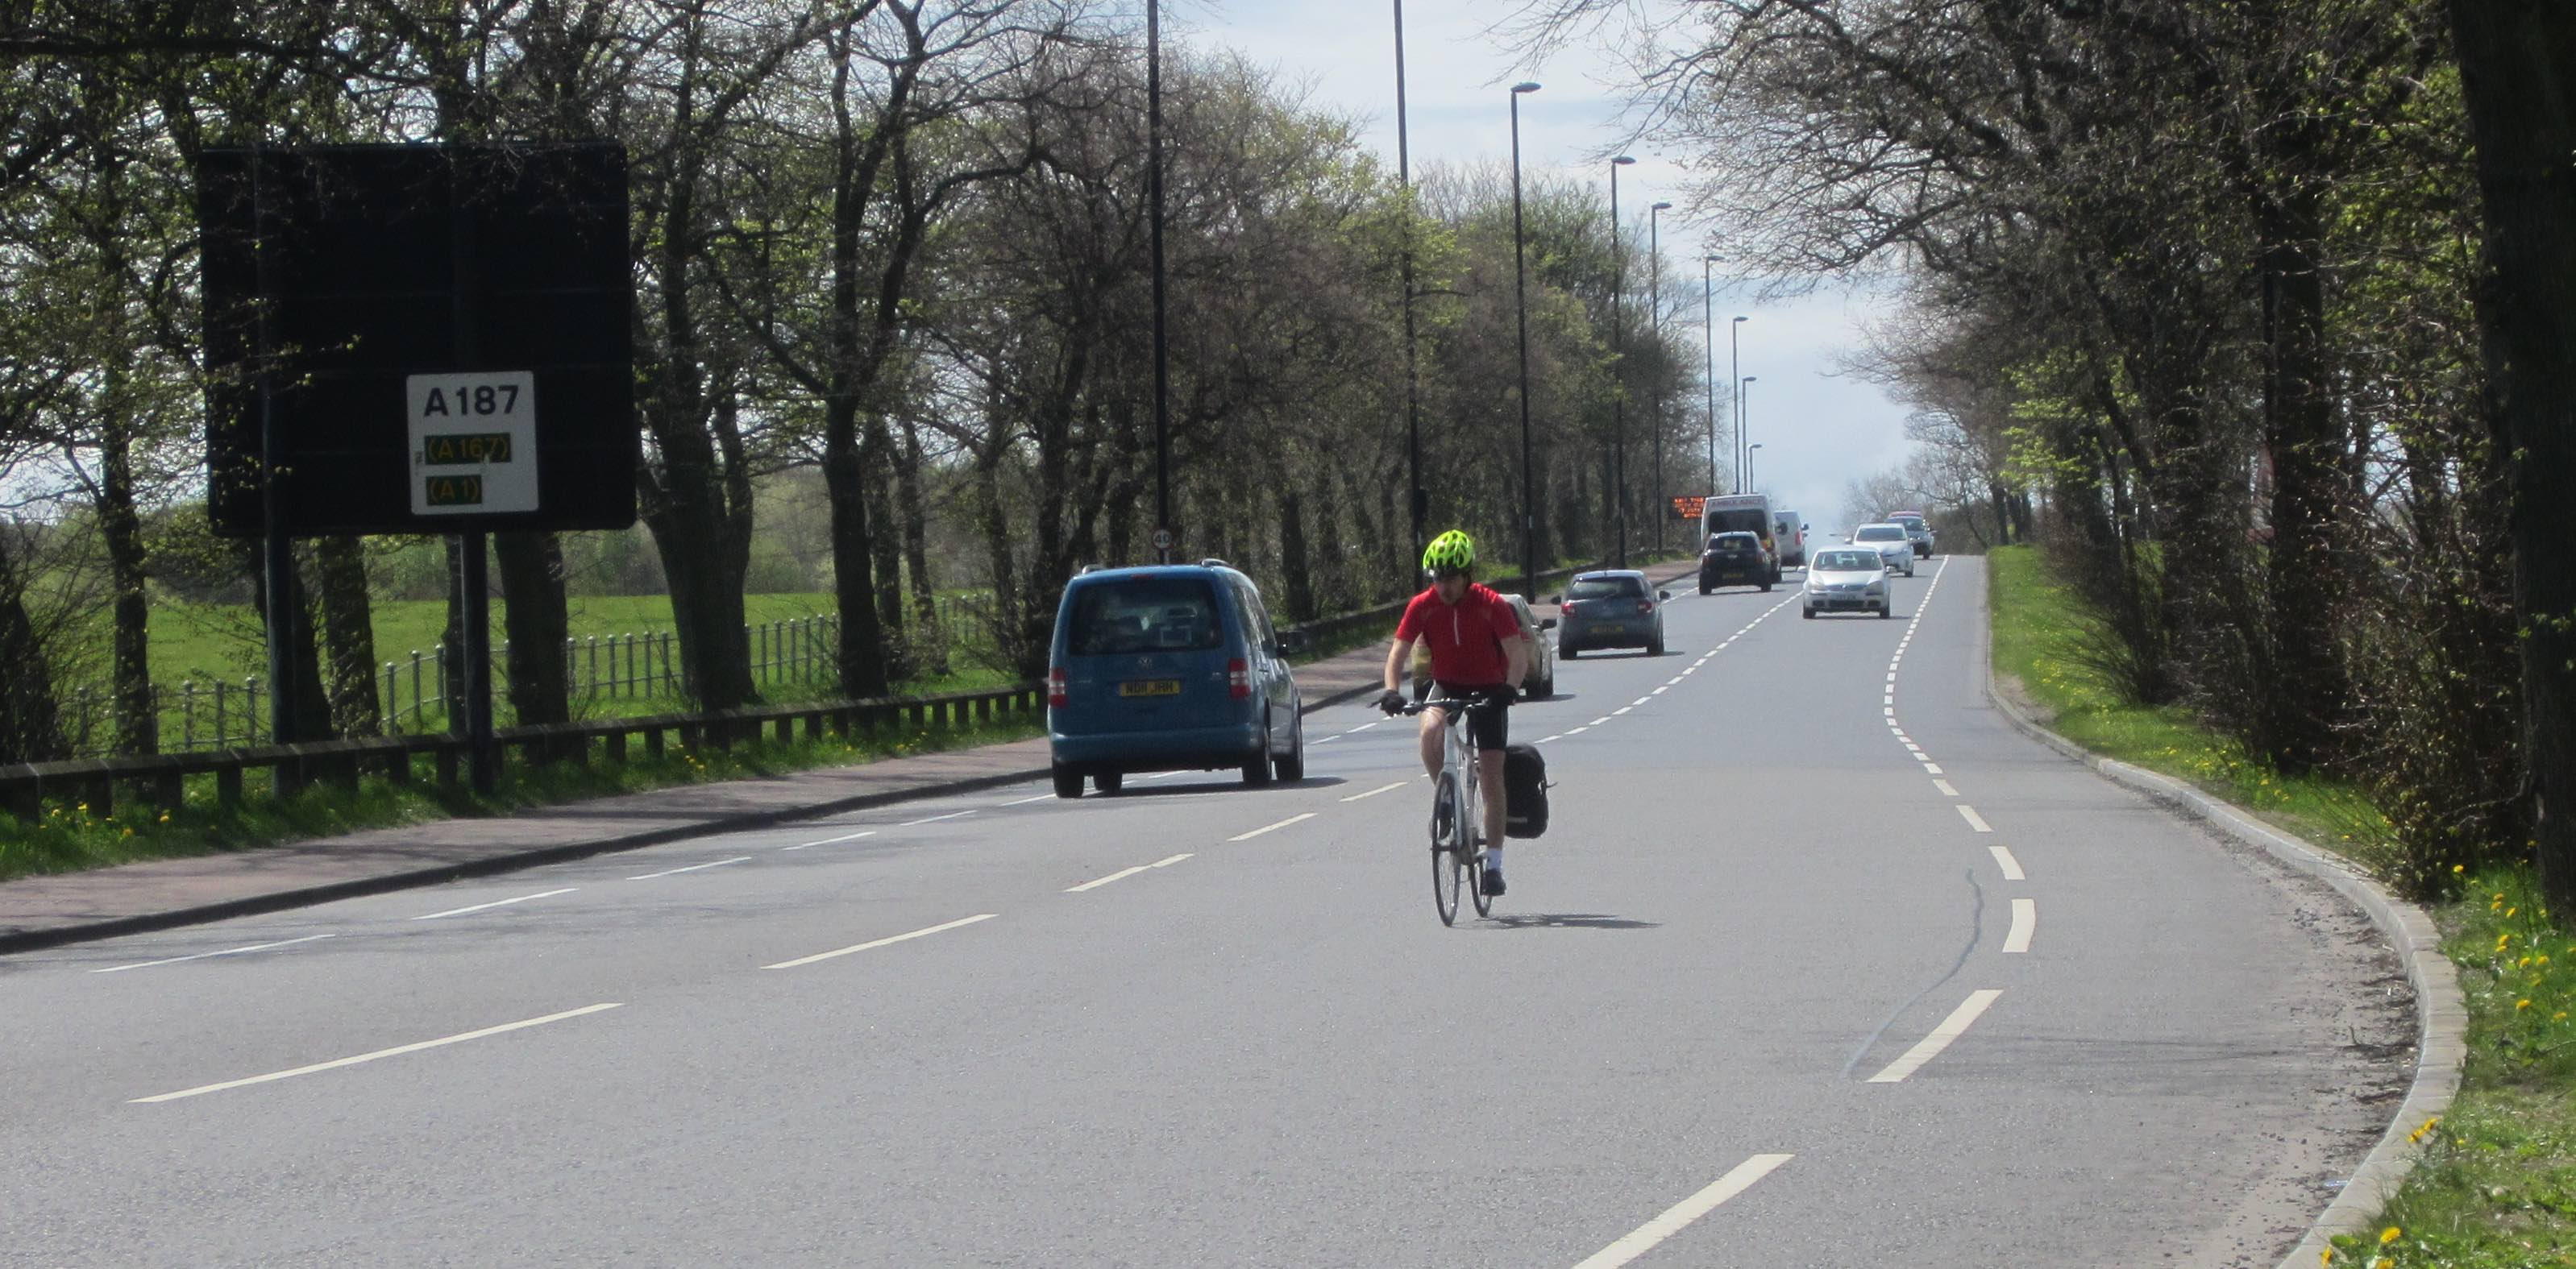 Person cycling in the main carriageway approaching the Kenton Road traffic lights.